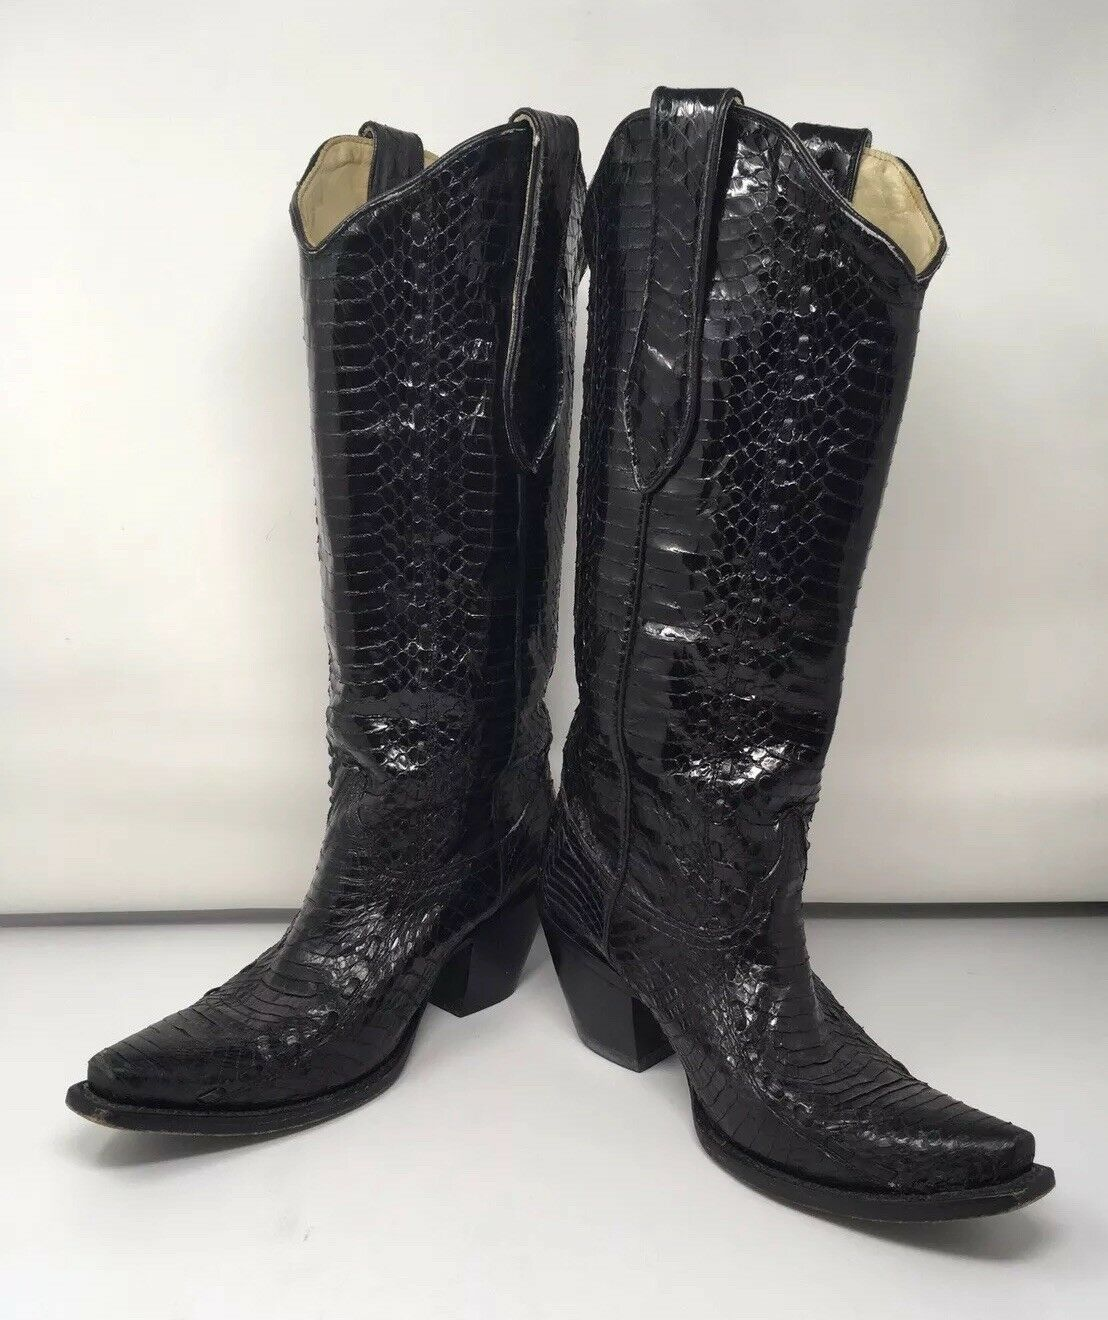 Authentic Women's CORRAL CORRAL CORRAL Black Snakeskin Western   Cowboy Boots; Size 7M;  2000+ ab1401